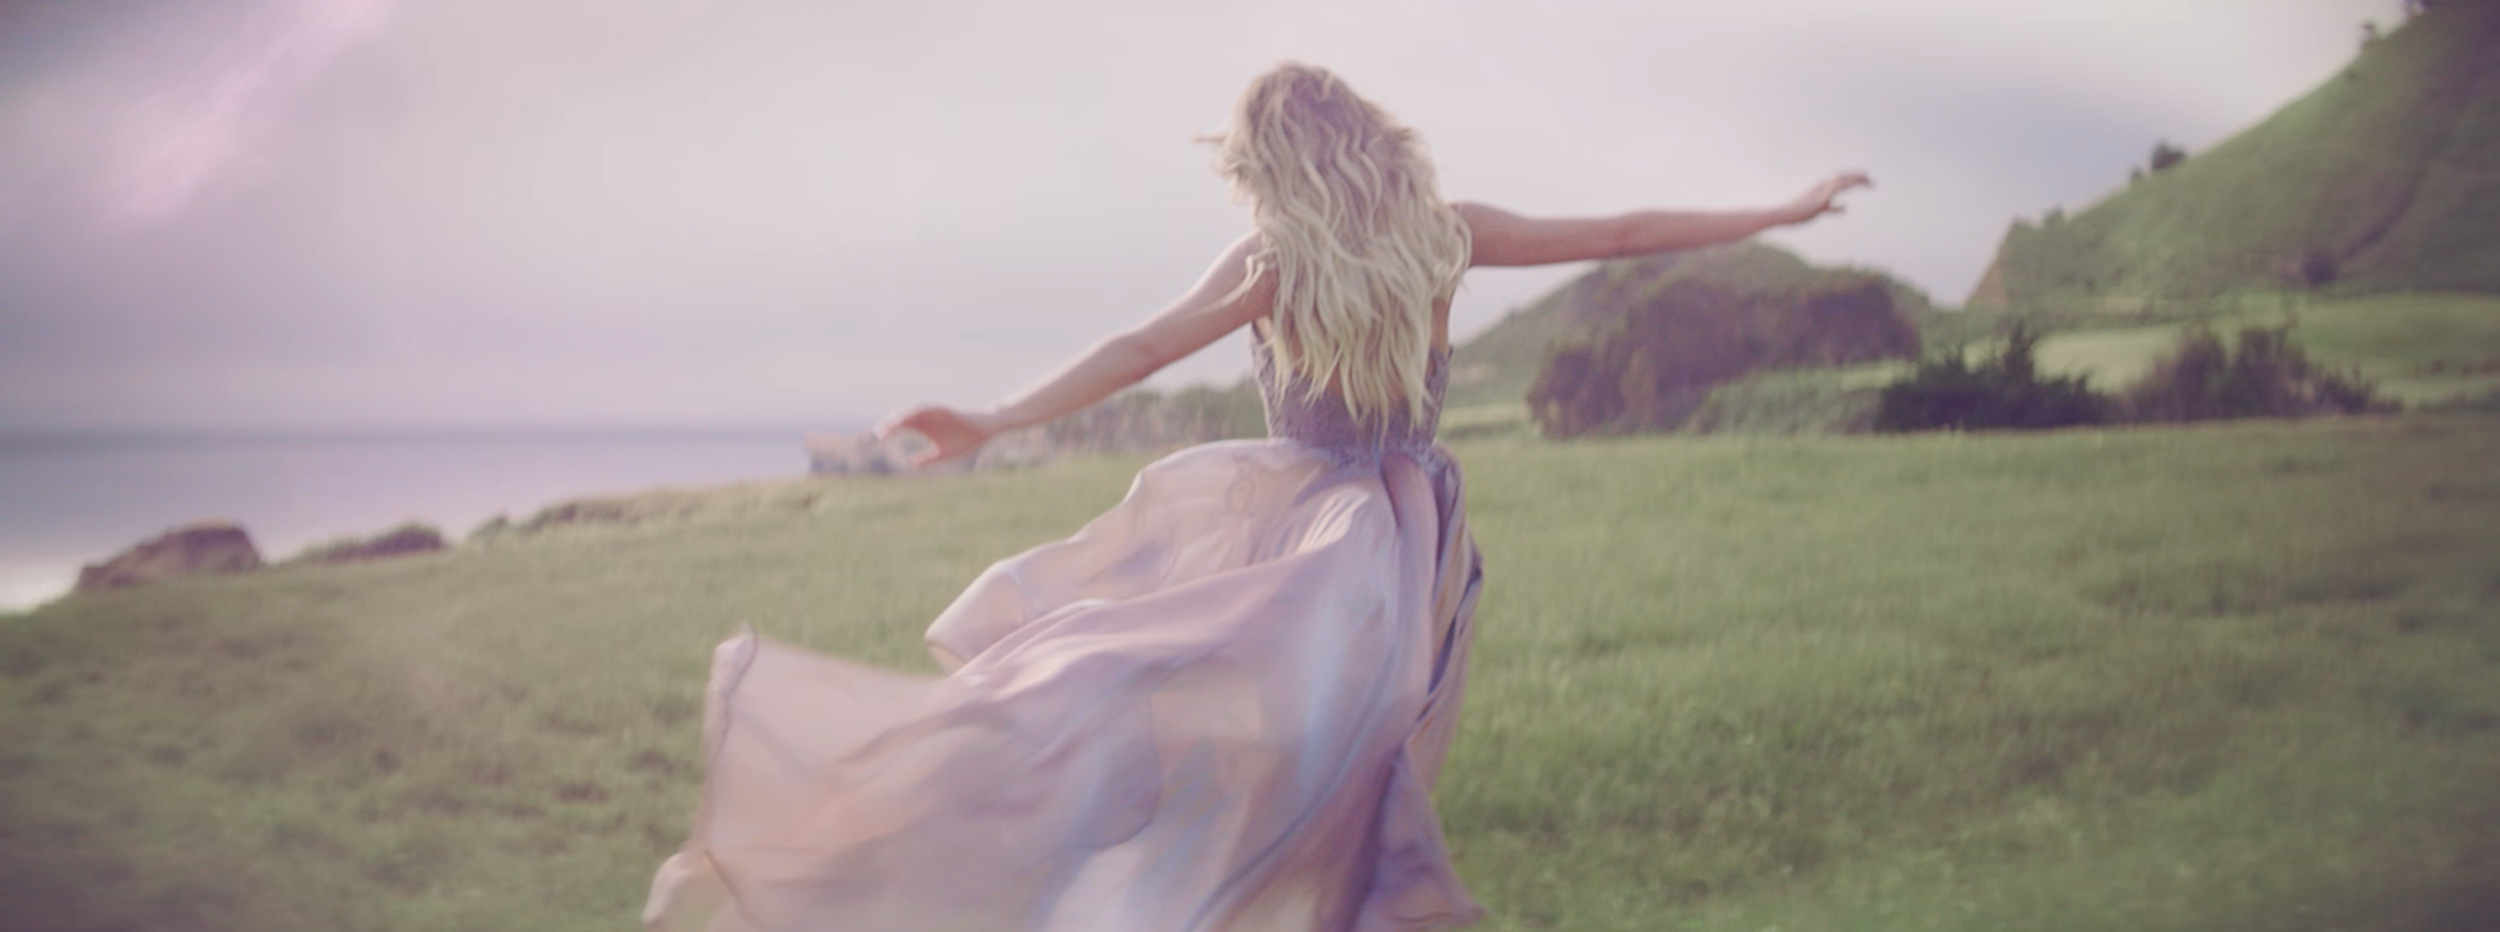 Legends-KelseaBallerini_FINAL_mp4 15.png